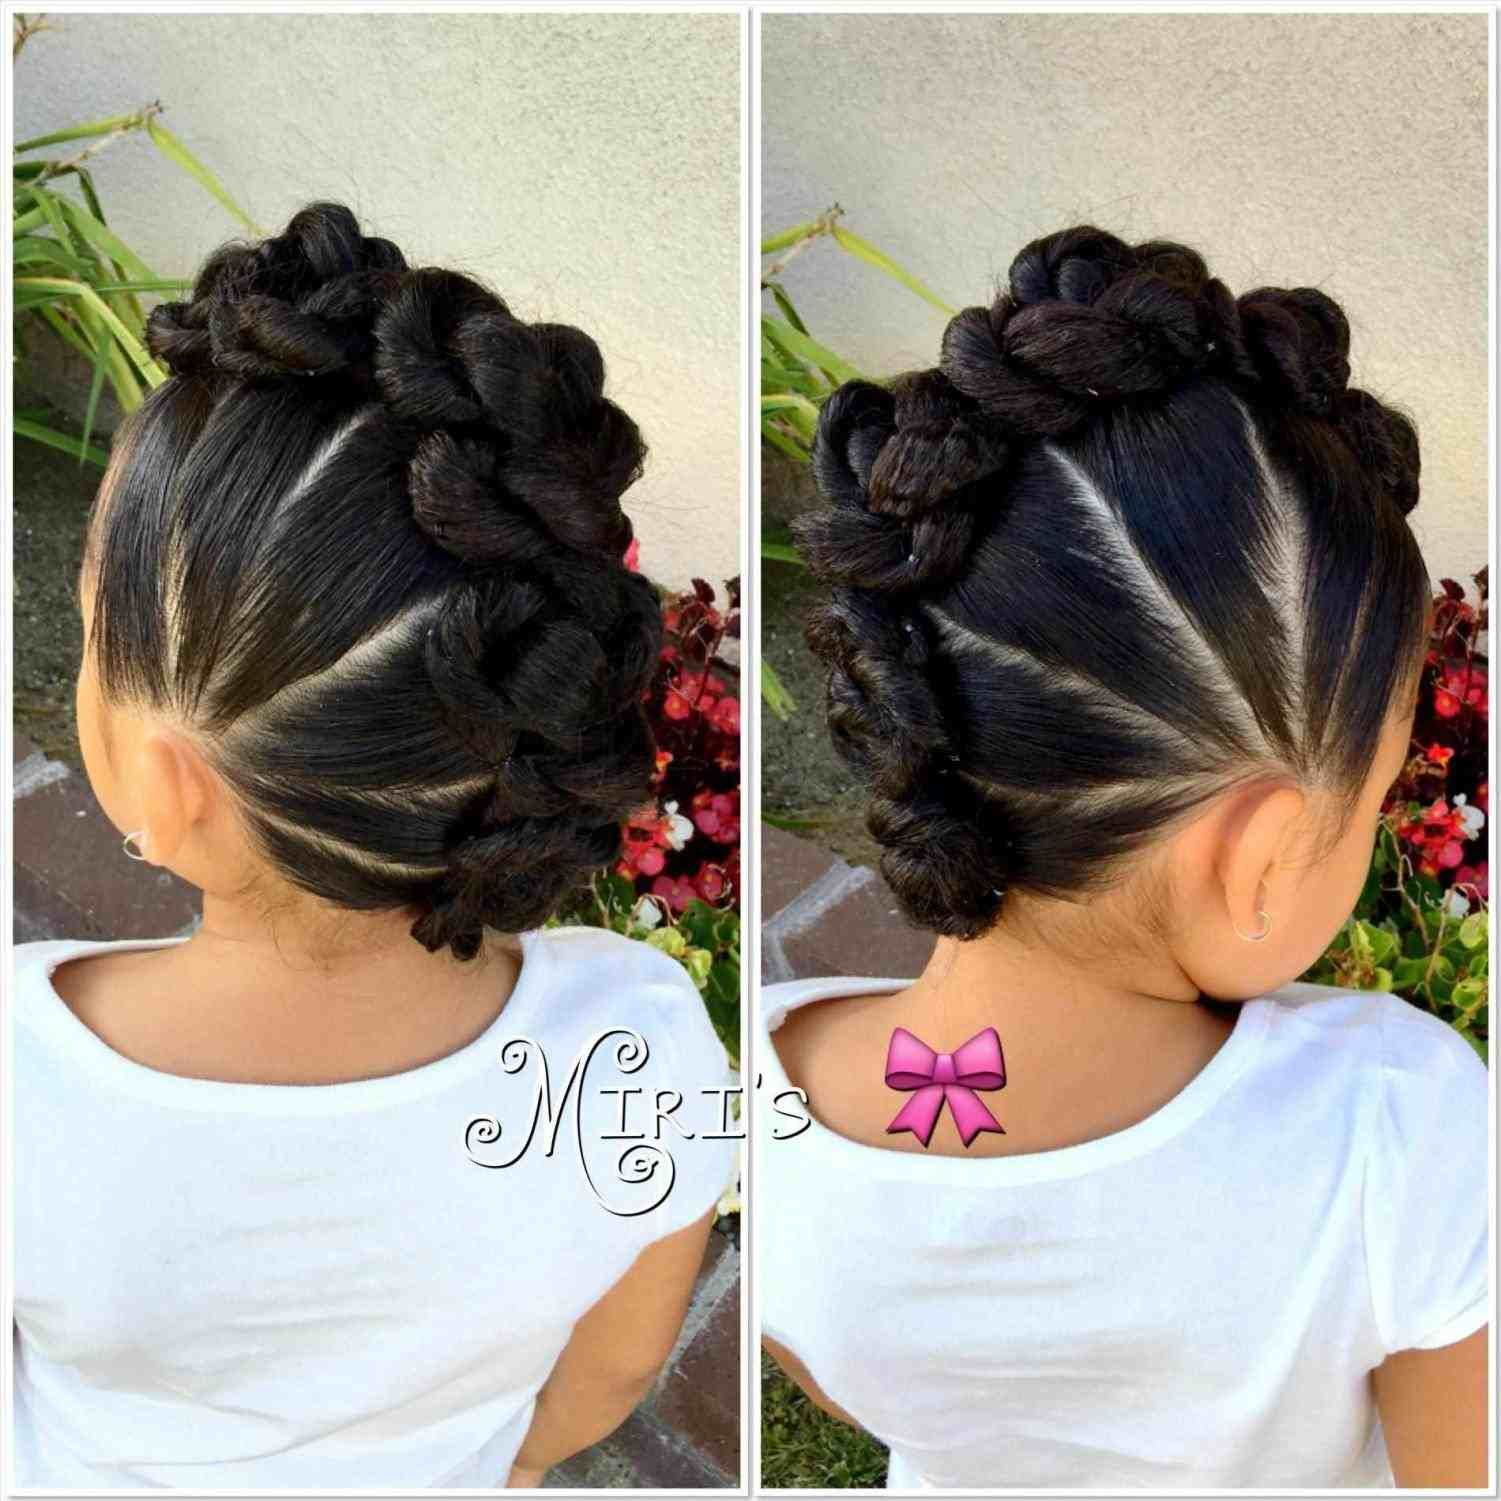 50++ Mohawk hairstyles for toddlers ideas